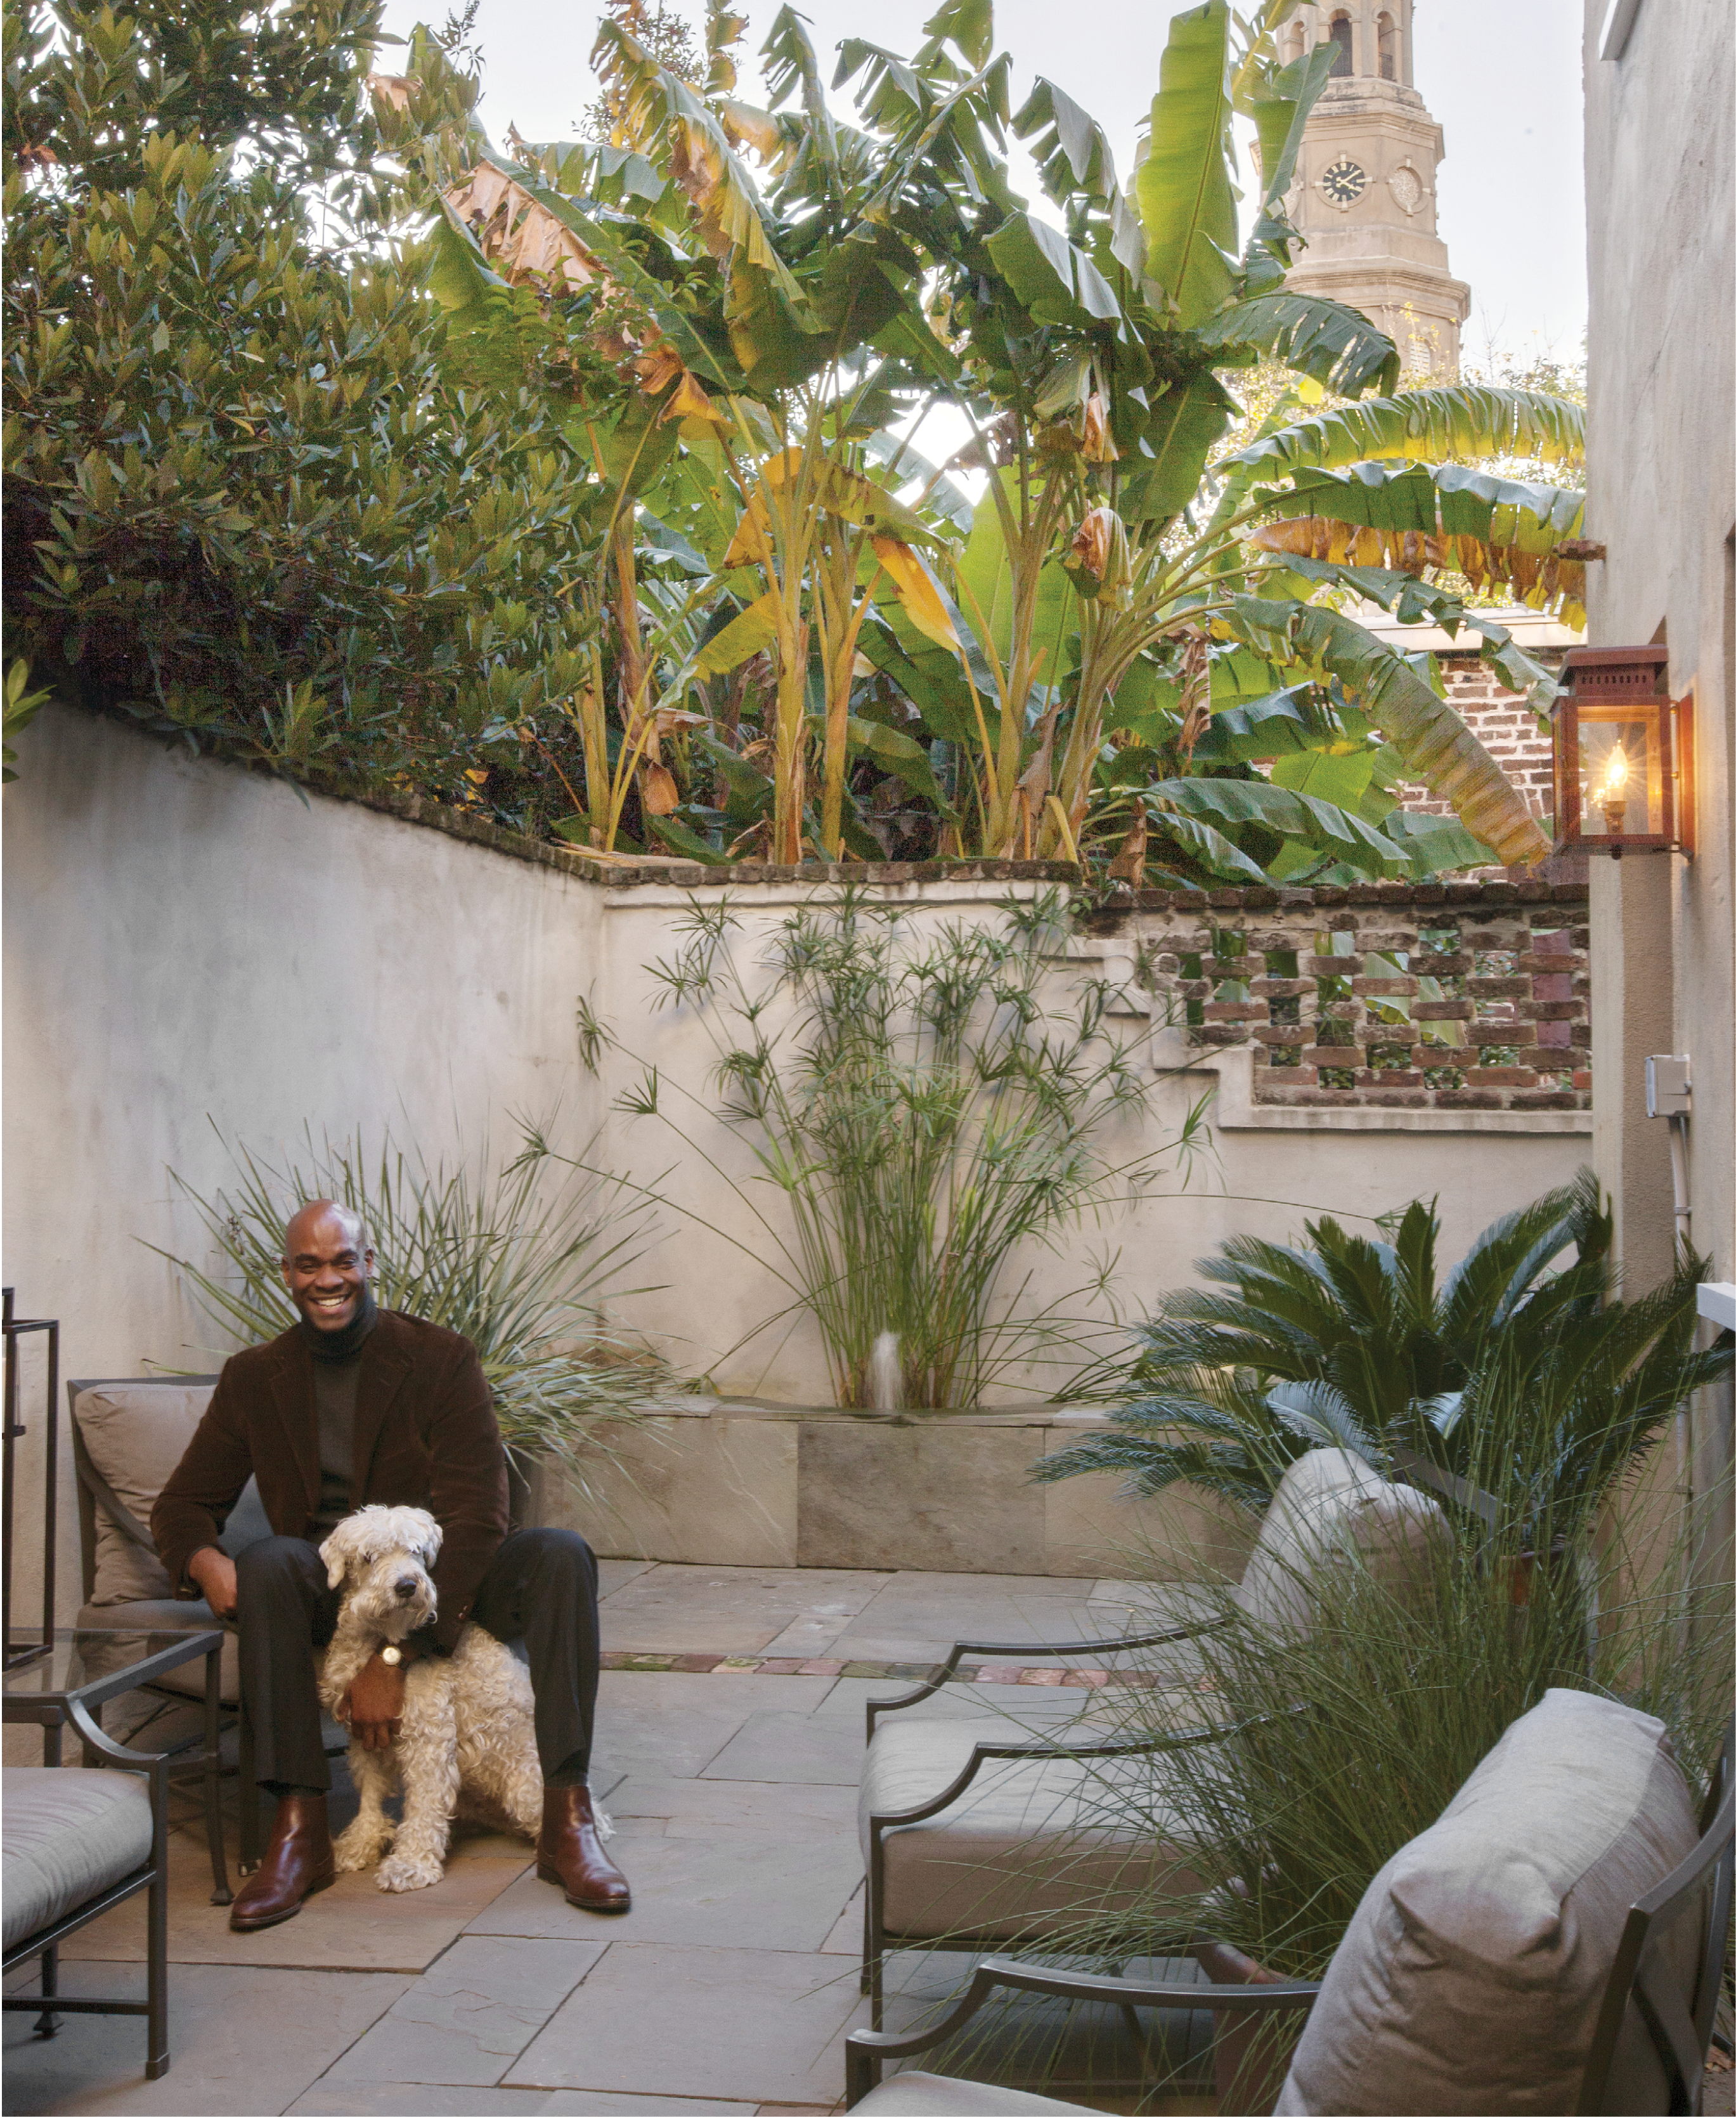 """Green Room: Irions says his private courtyard, which boasts a view of the steeple of St. Philip's Church, is like another room of the house. """"I am very proud to be a new member of this community and so grateful to call Charleston home,"""" he says."""